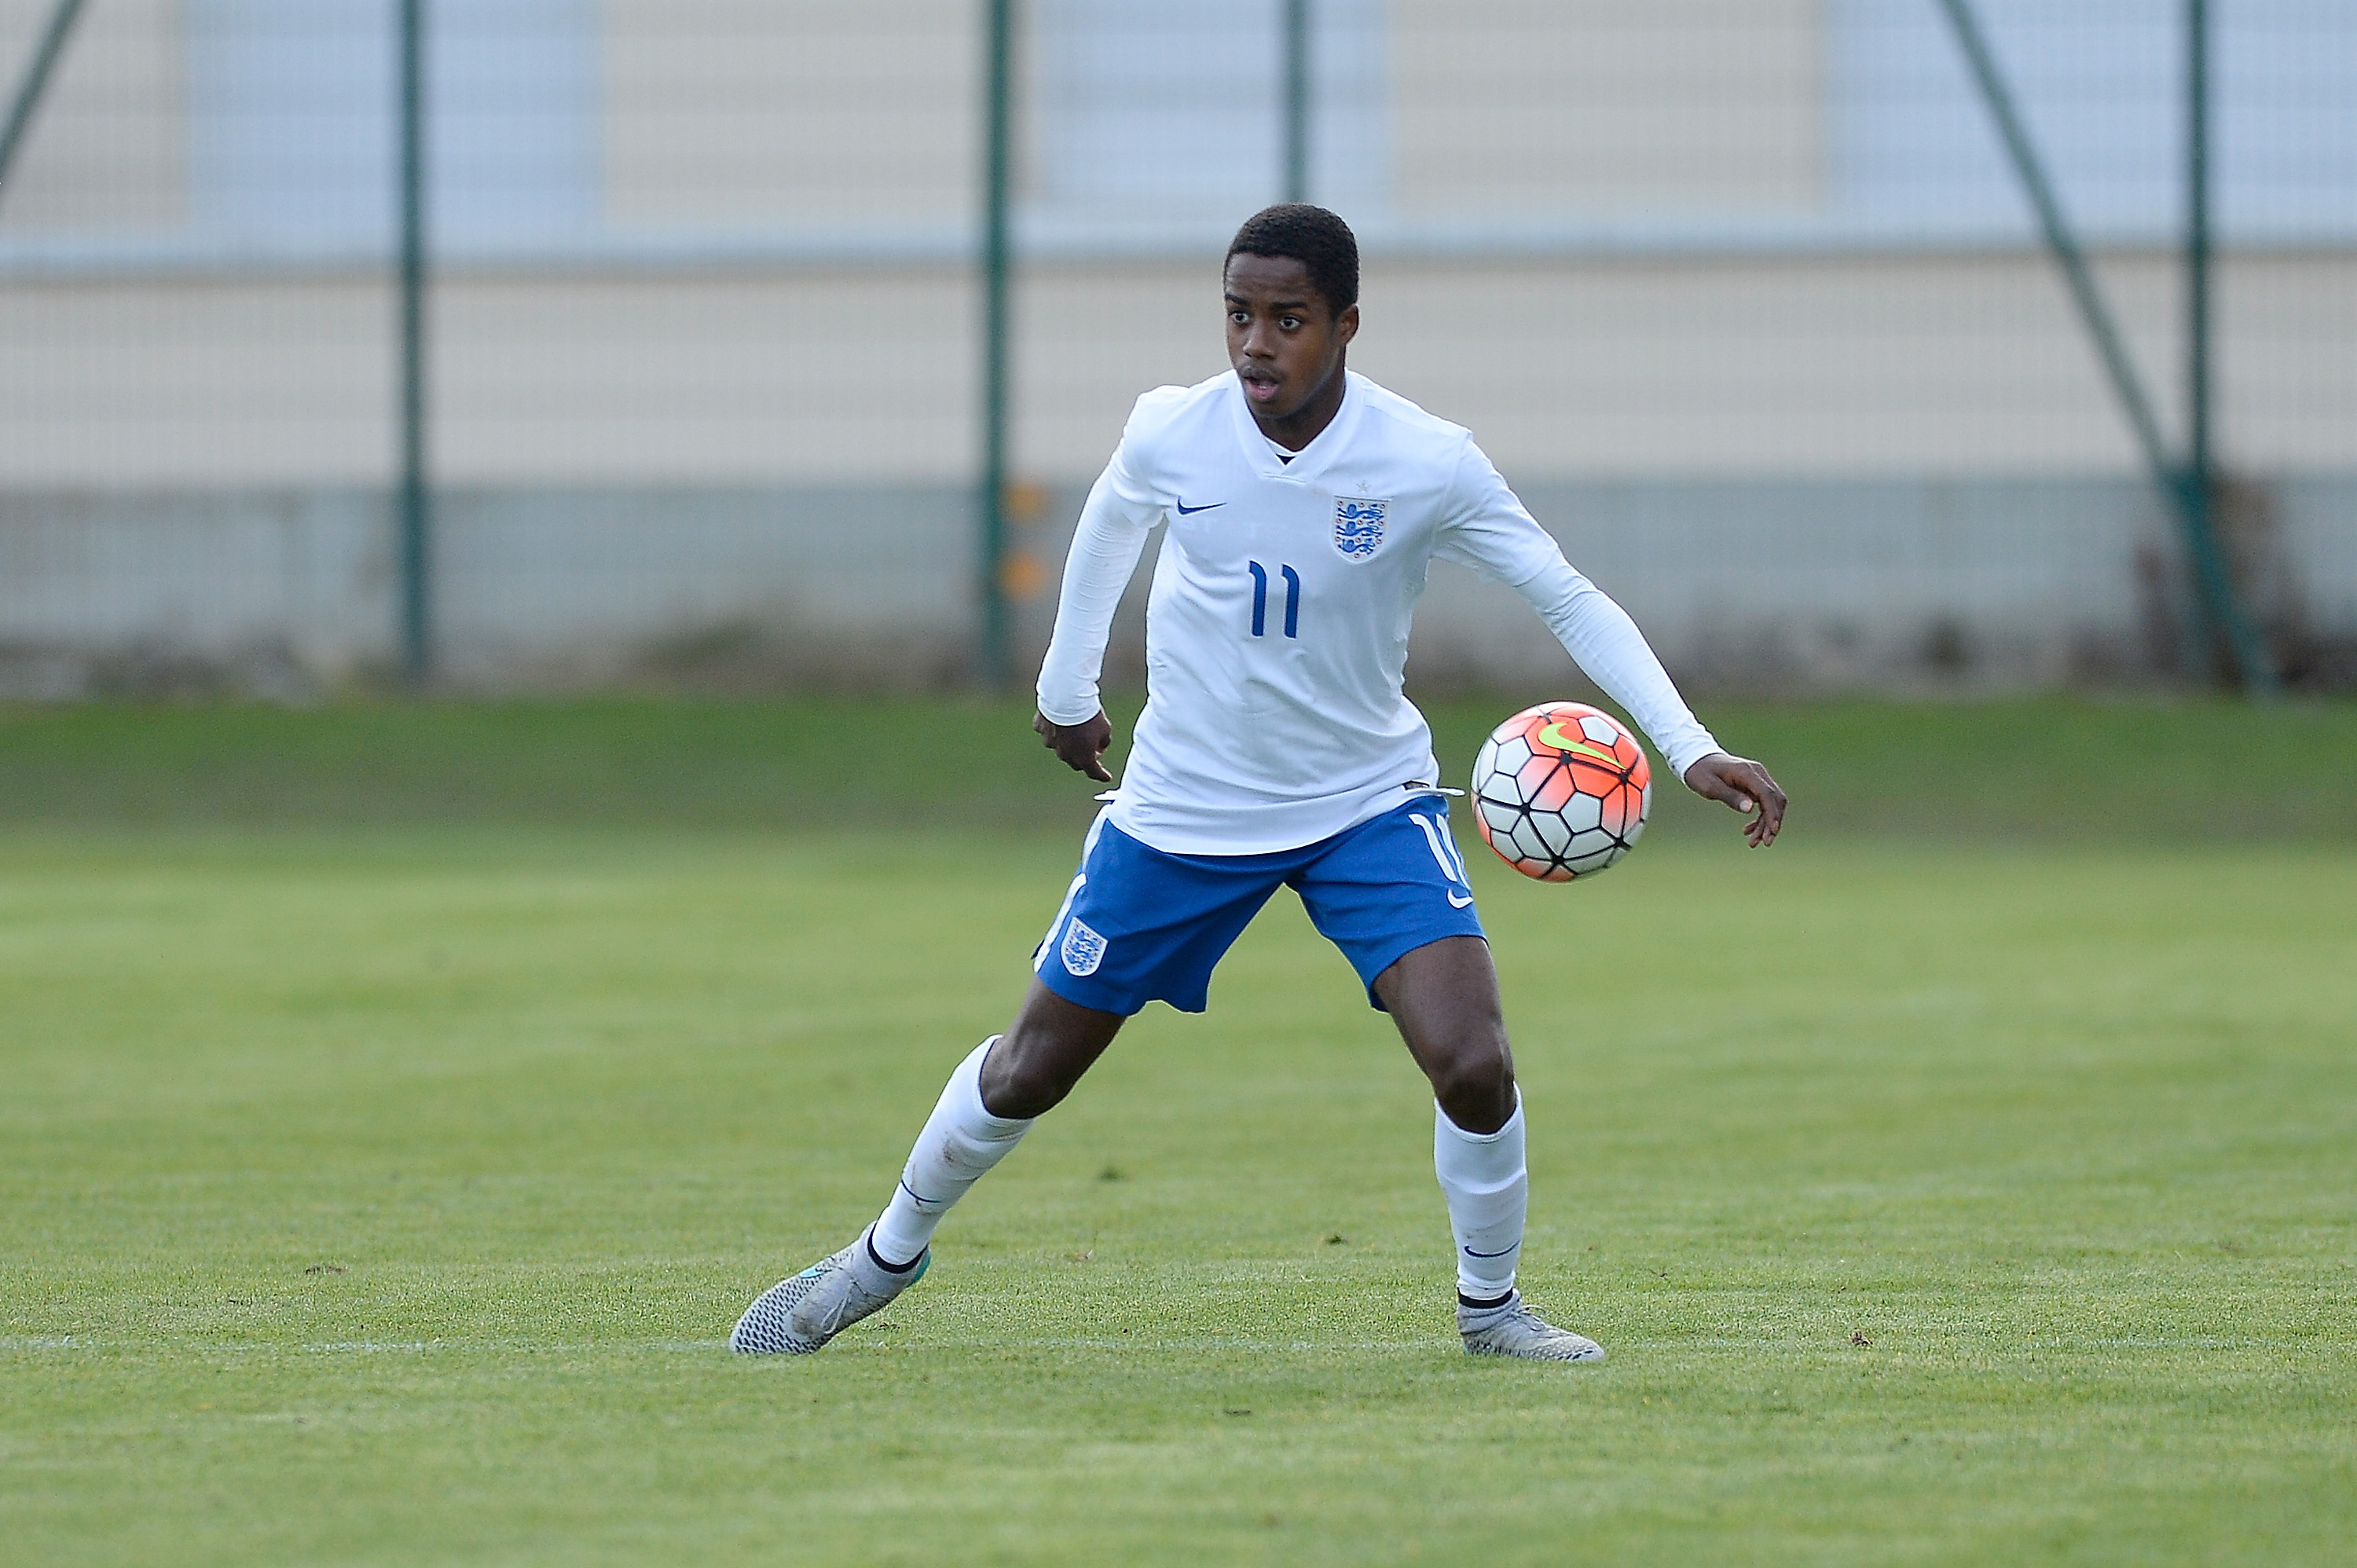 Liverpool join Arsenal in race to sign Fulham's Ryan Sessegnon